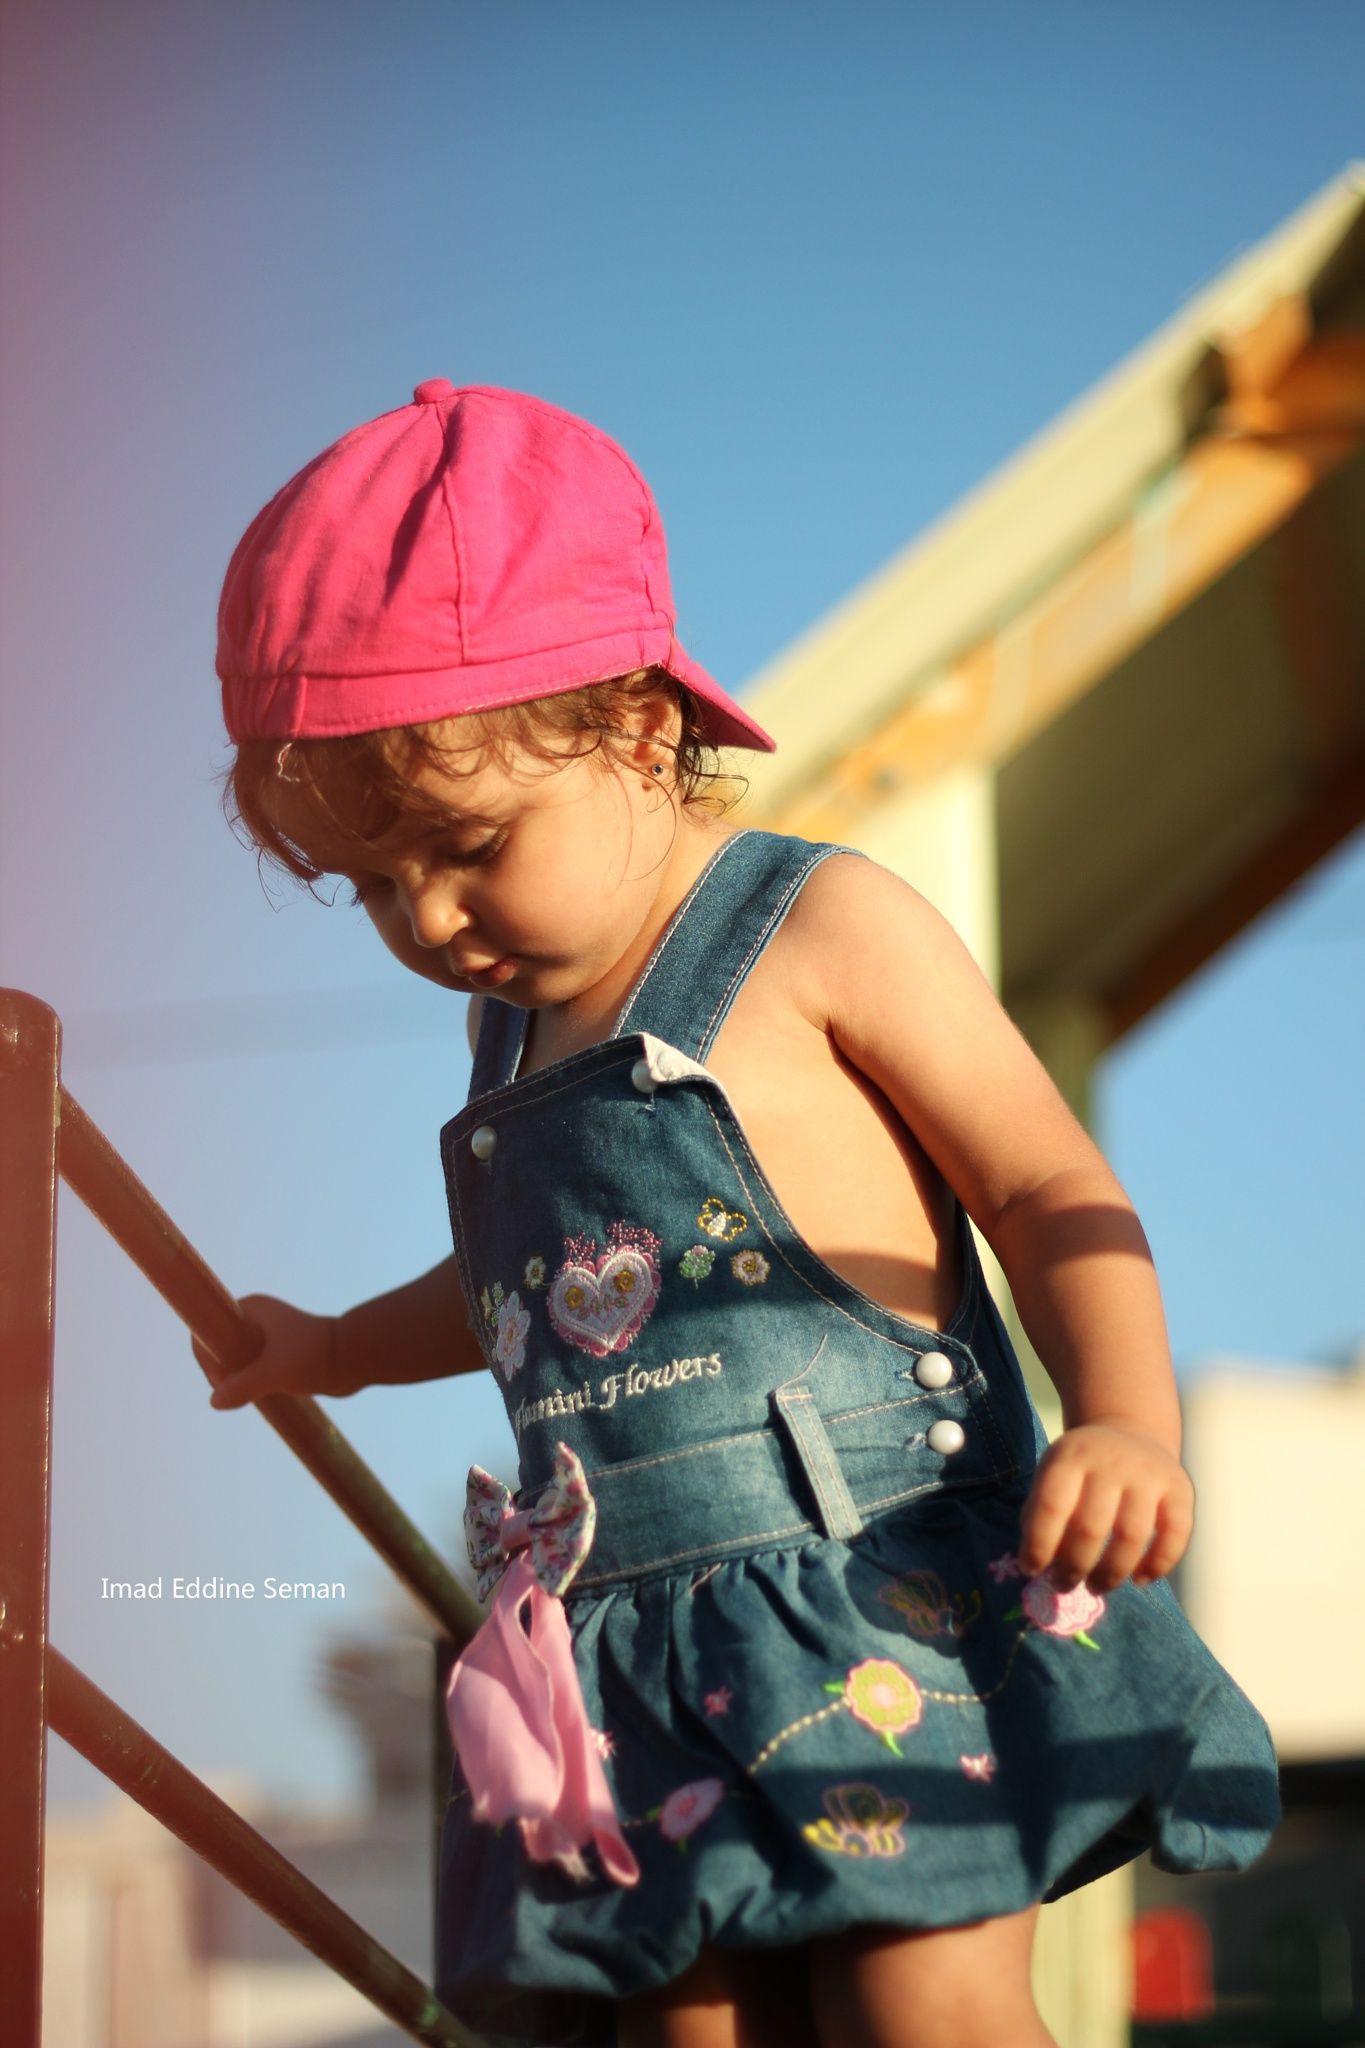 The childhood by Imad Eddine Seman